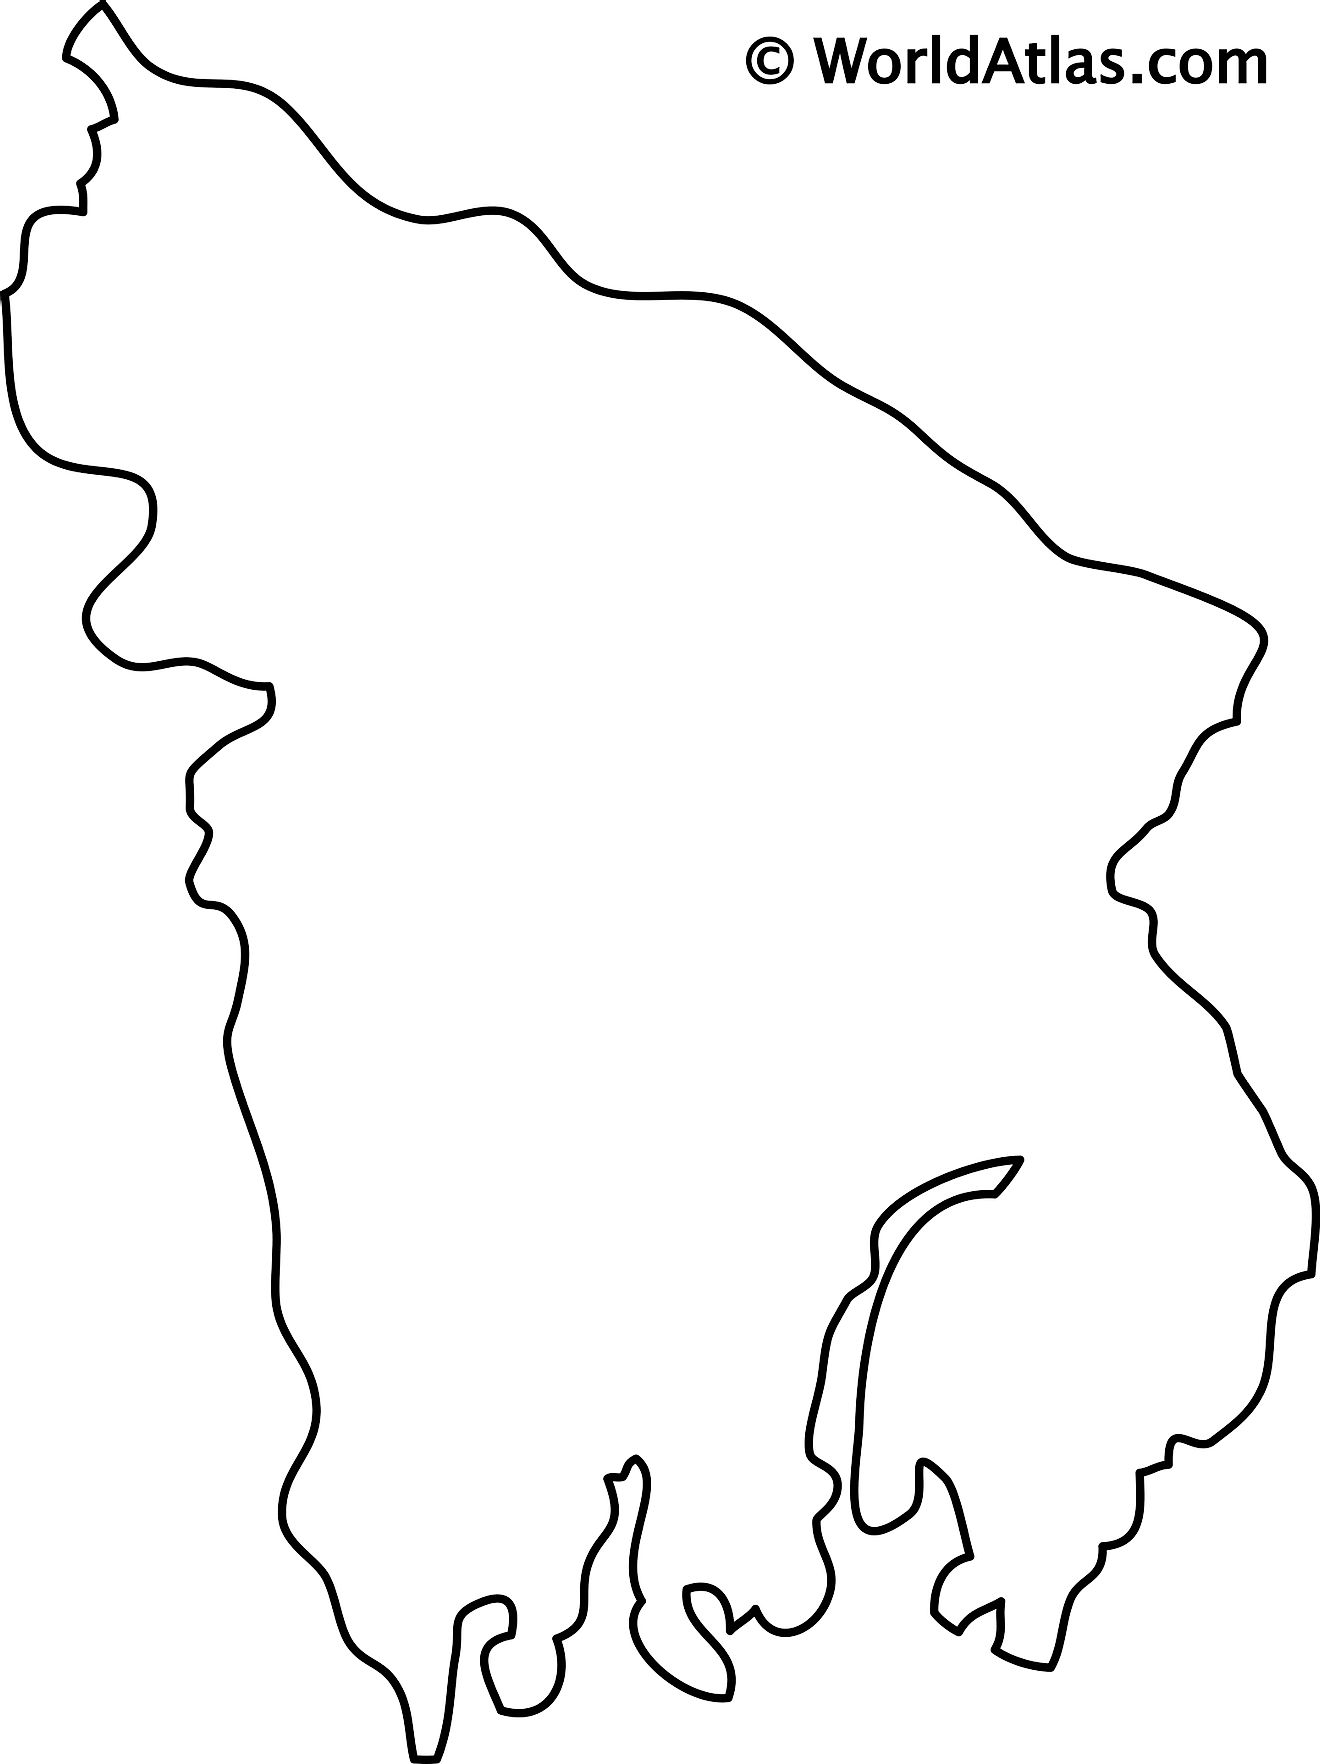 Blank Outline Map of Bangladesh